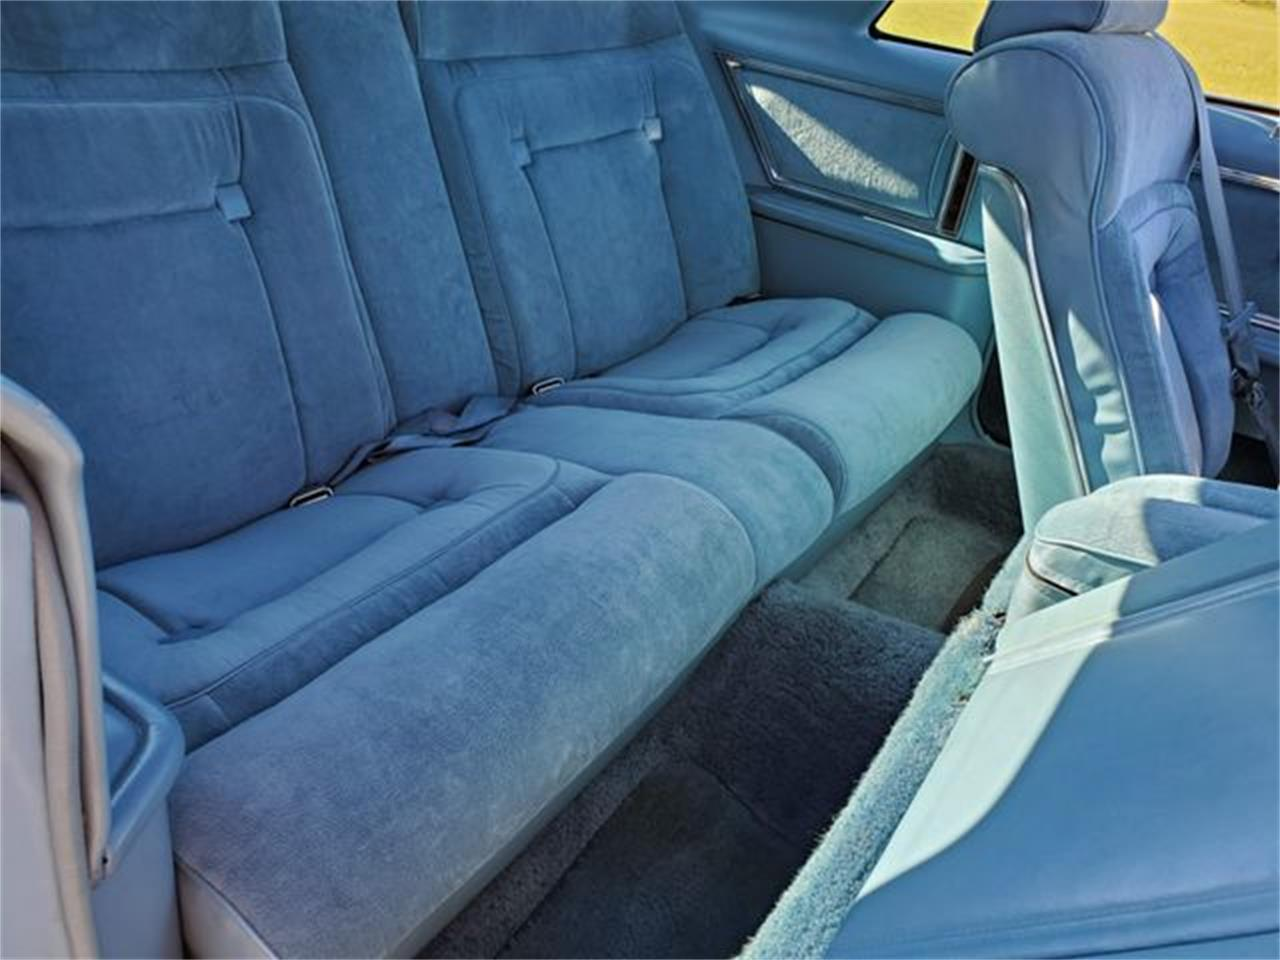 1979 Lincoln Continental for sale in Hope Mills, NC – photo 35